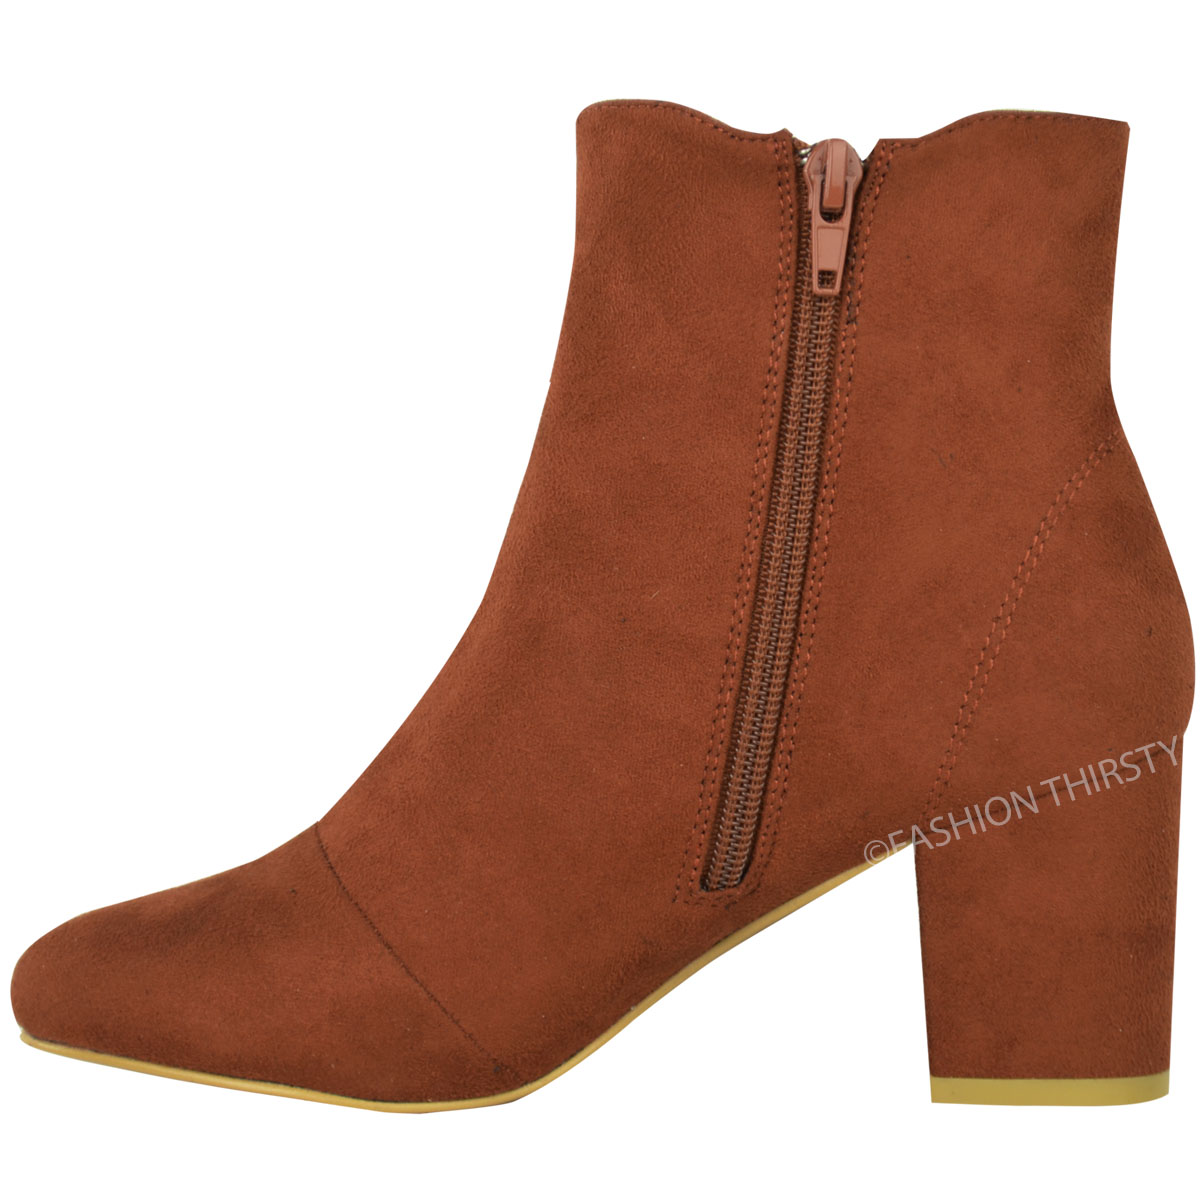 thumbnail 10 - WOMENS-LADIES-LOW-BLOCK-HEEL-CHELSEA-ANKLE-BOOTS-CUT-OUT-LACE-UP-SHOES-NEW-SIZE